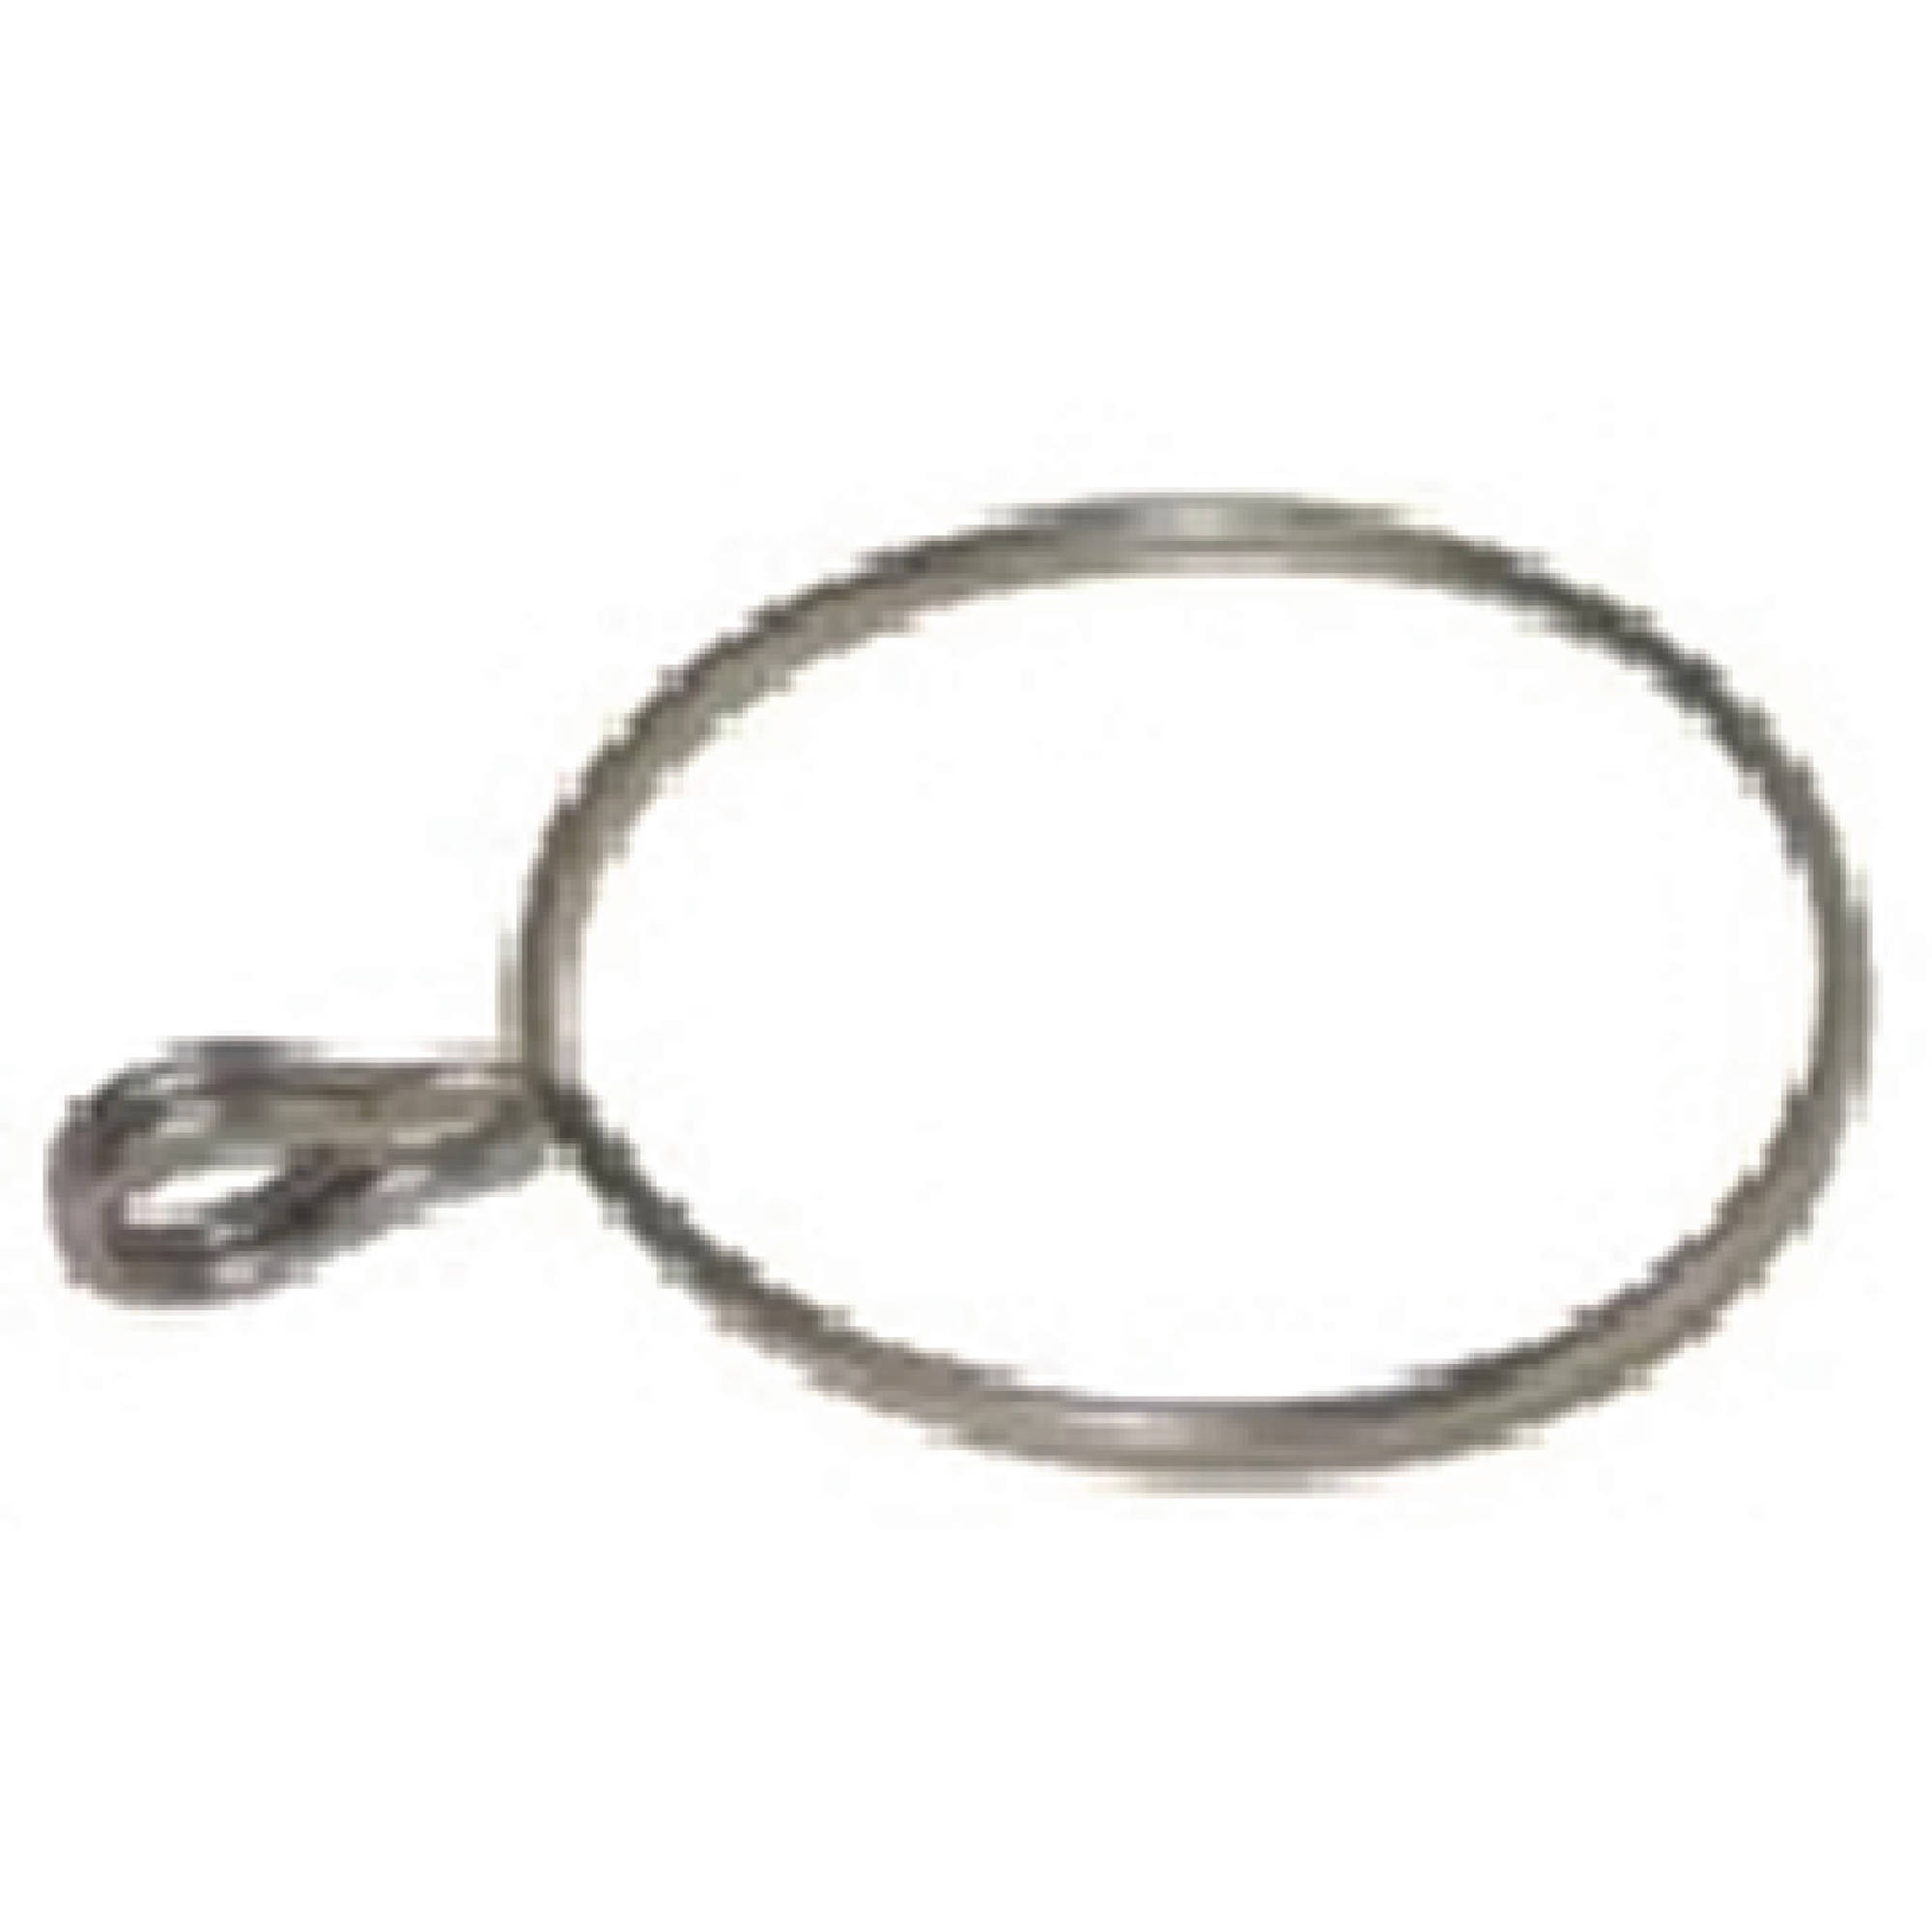 T-H Marine Stainless Steel Anchor Ring Only For Anchor Master Anchor Retrieval System by T-H Marine Supplies